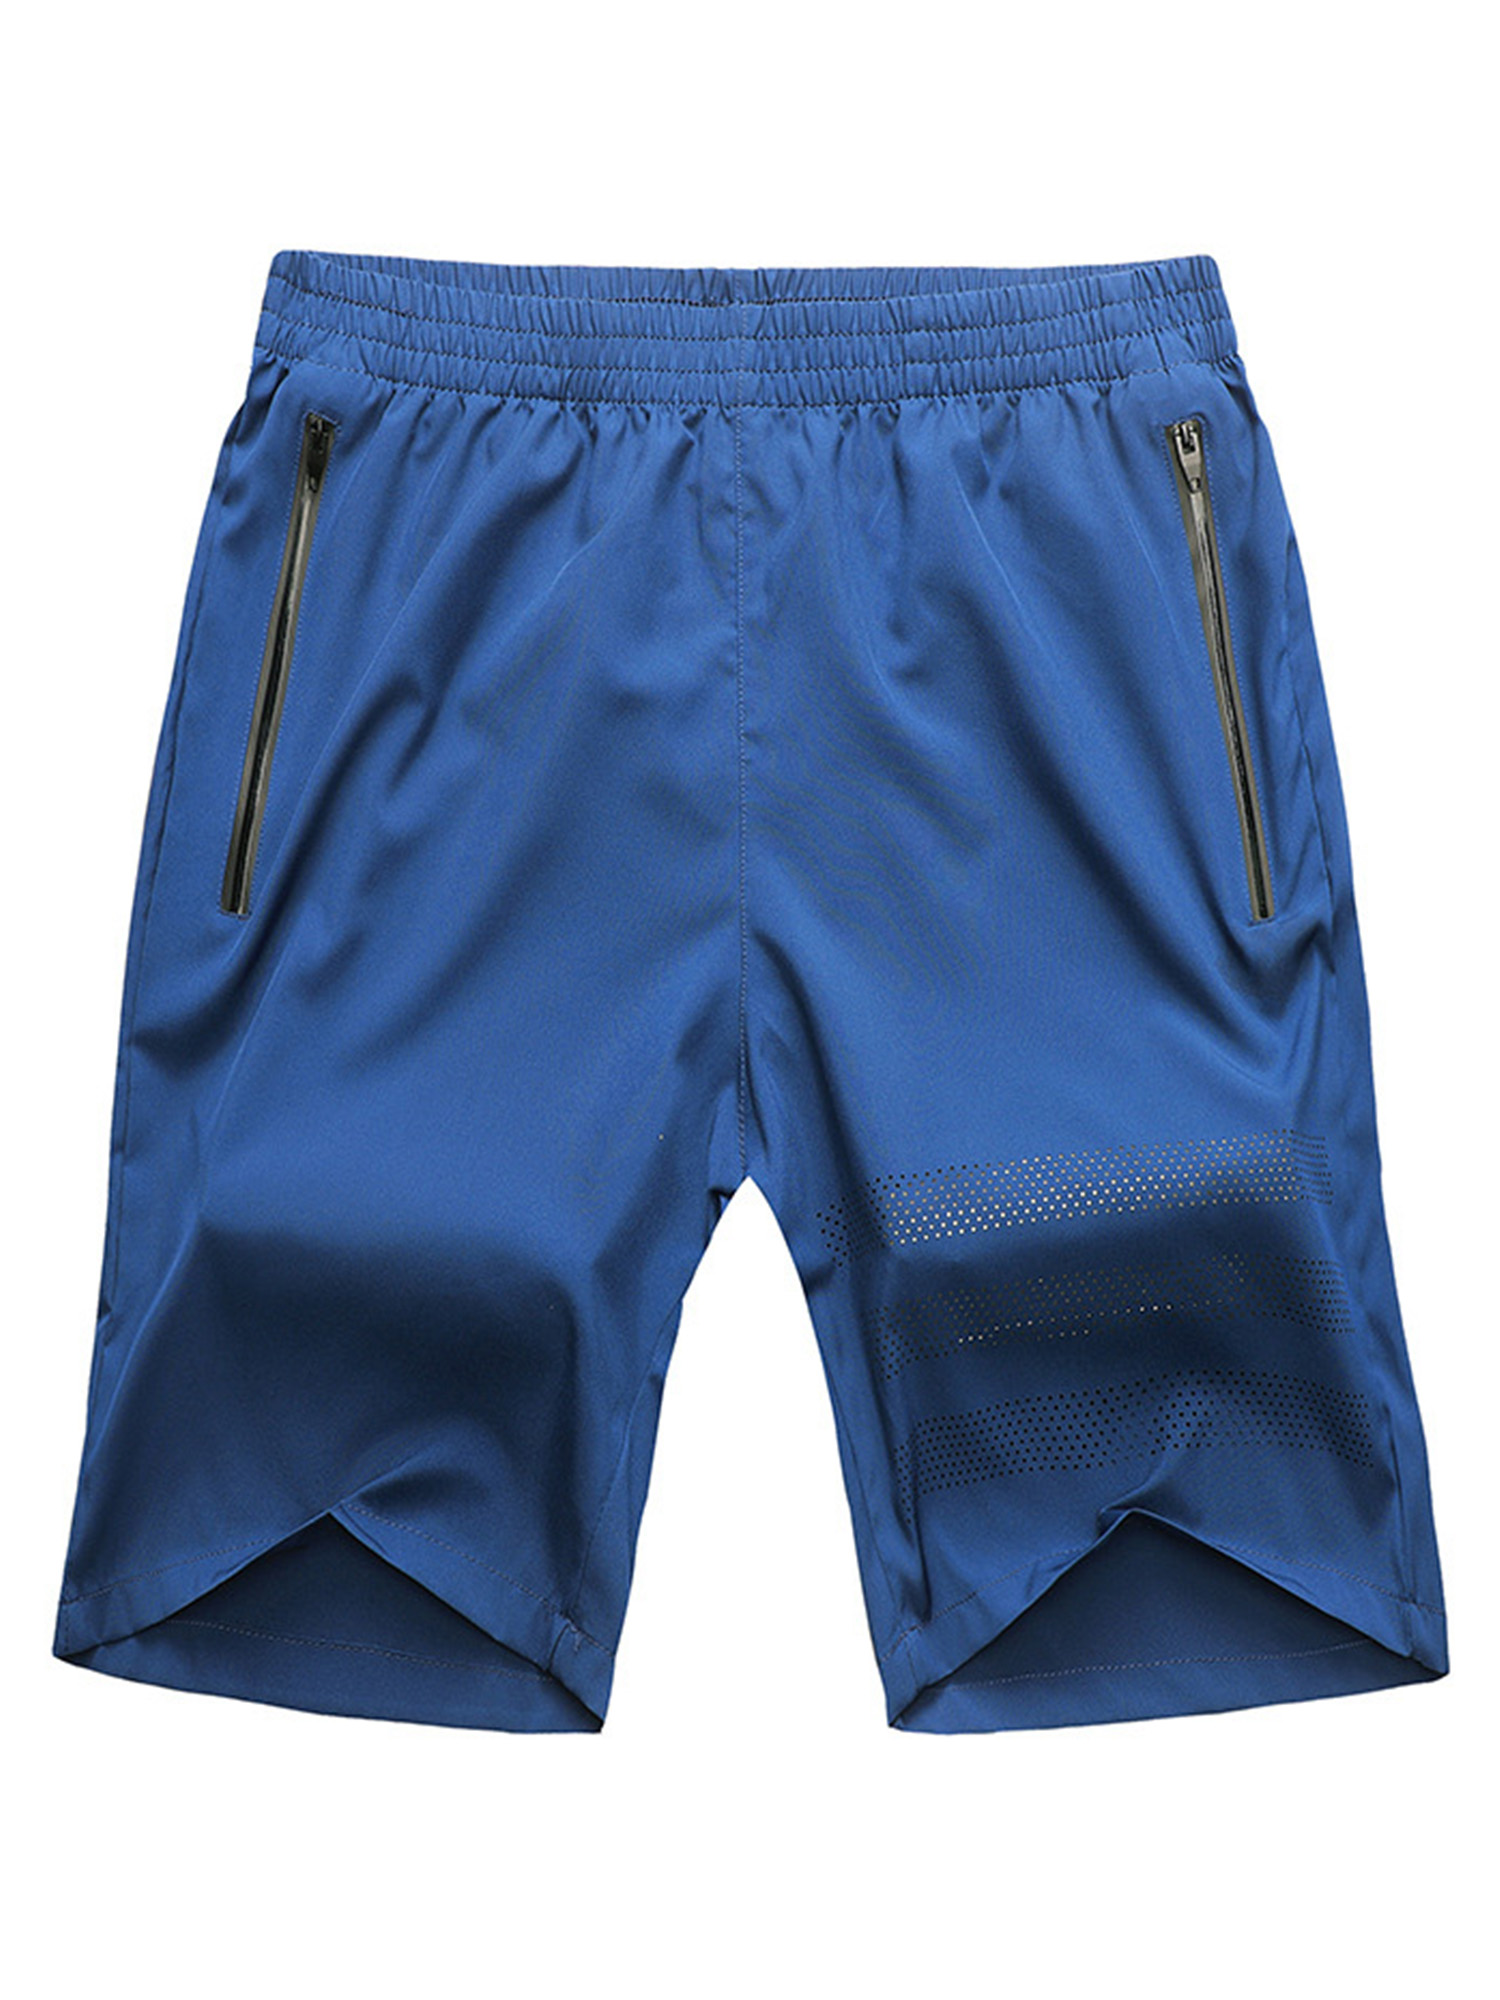 Details about  /Bike Bicycle Cycling Quick-drying Leisure Short Underwear Breathable Half Pants